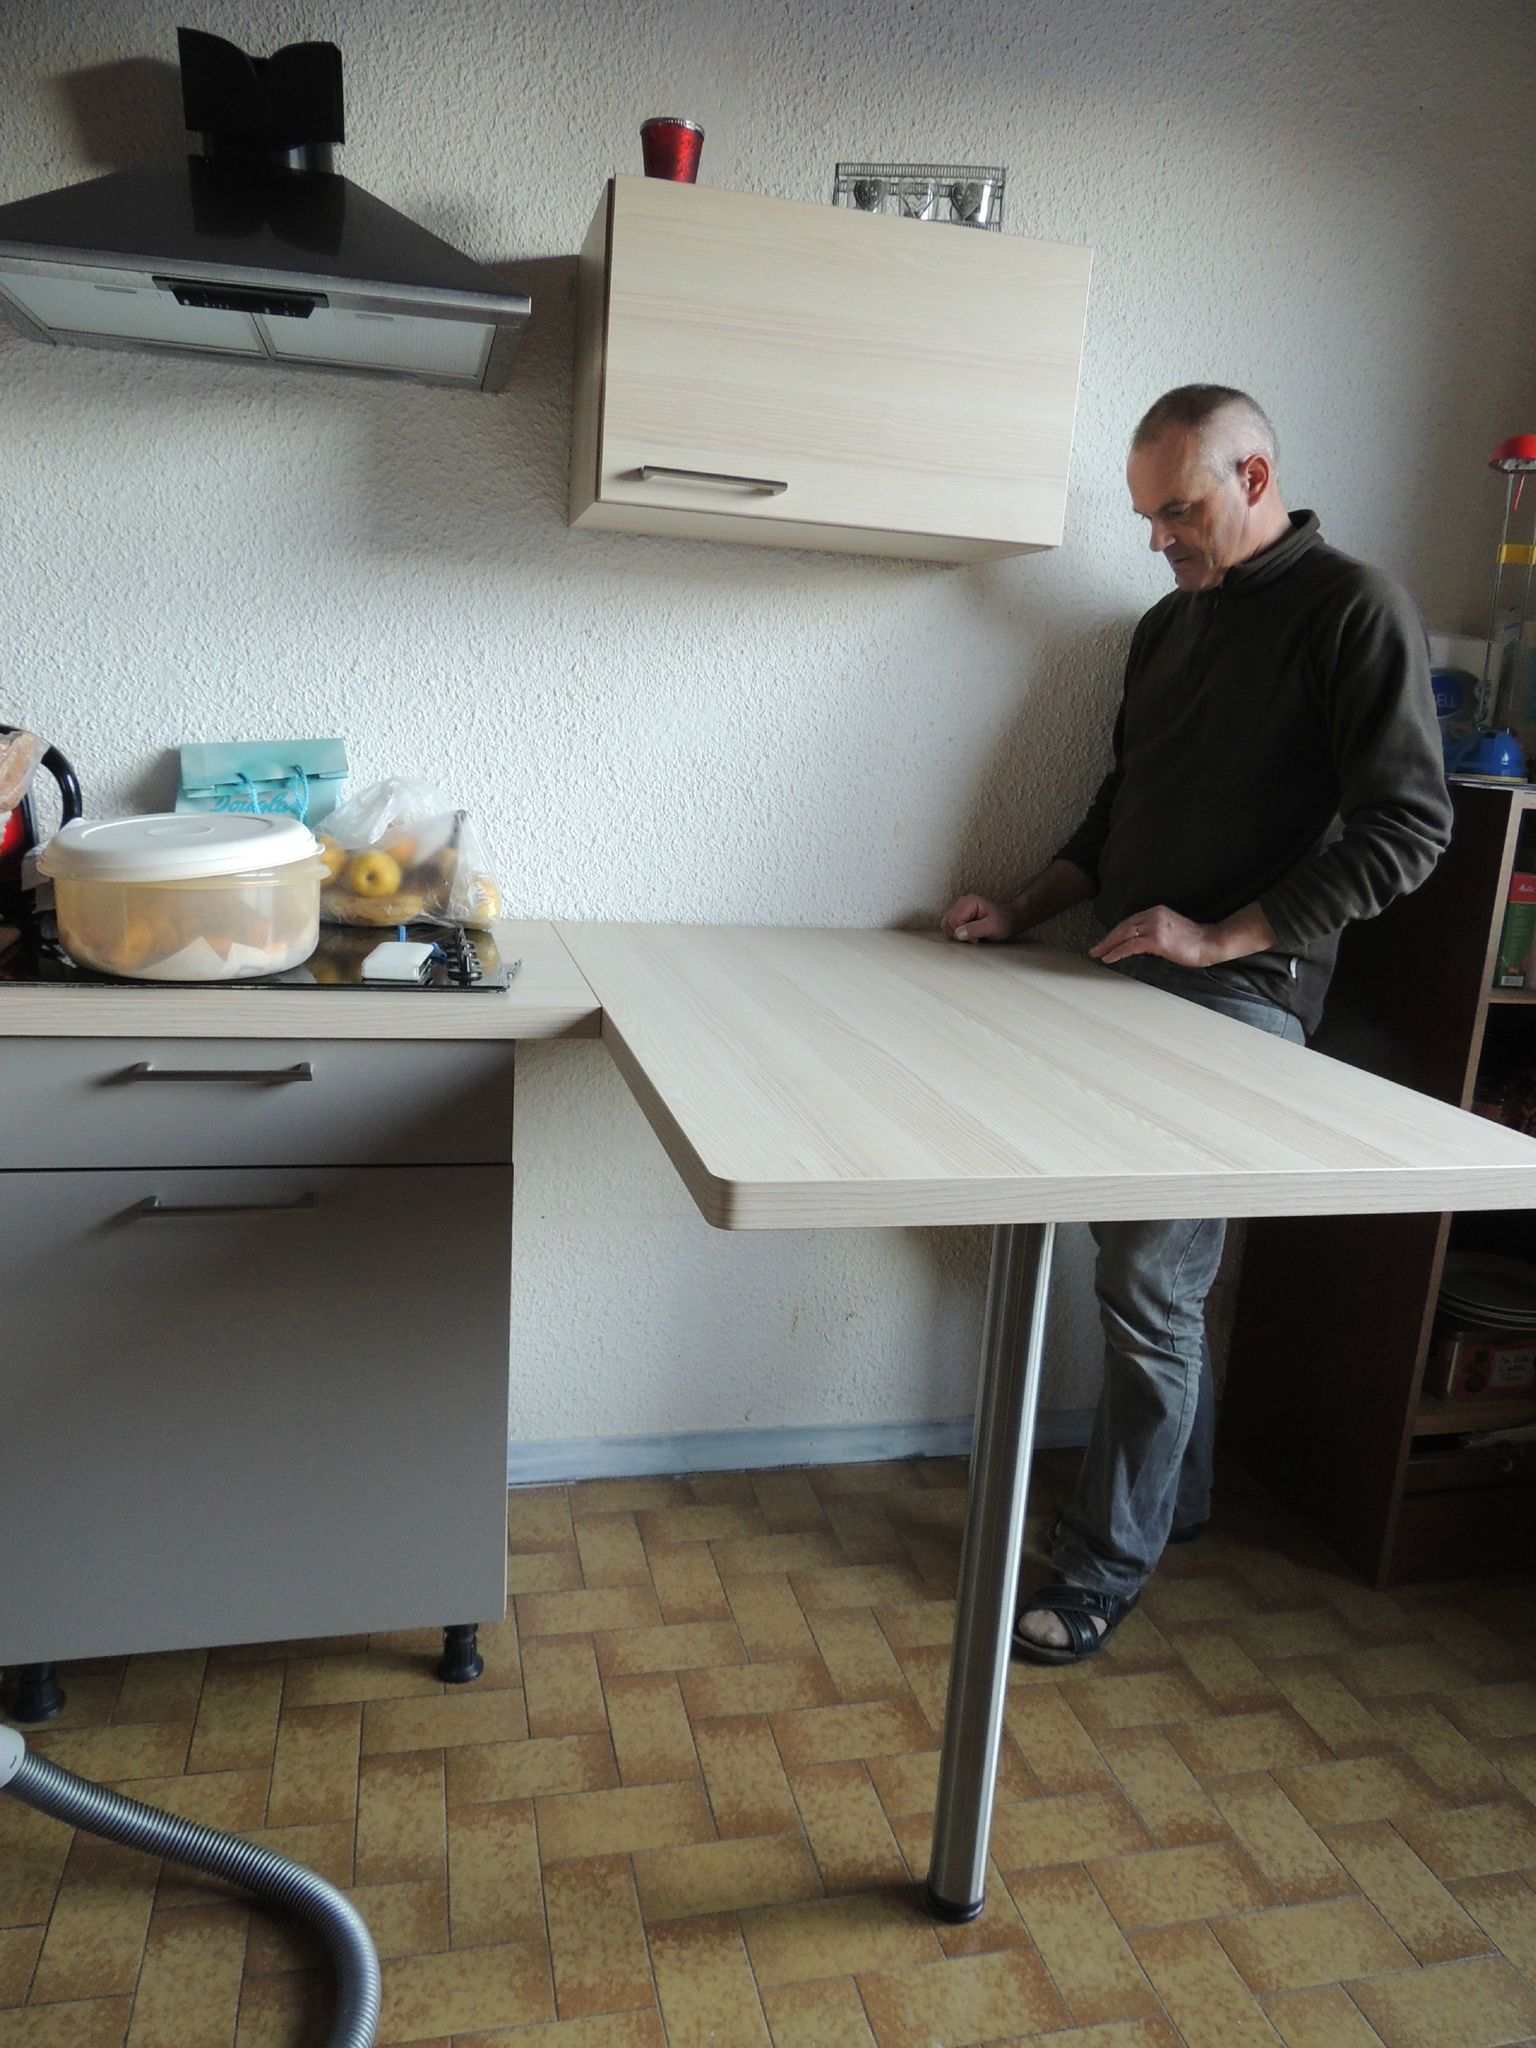 Table de bar fixe au mur Accorcher meuble cuisine vis